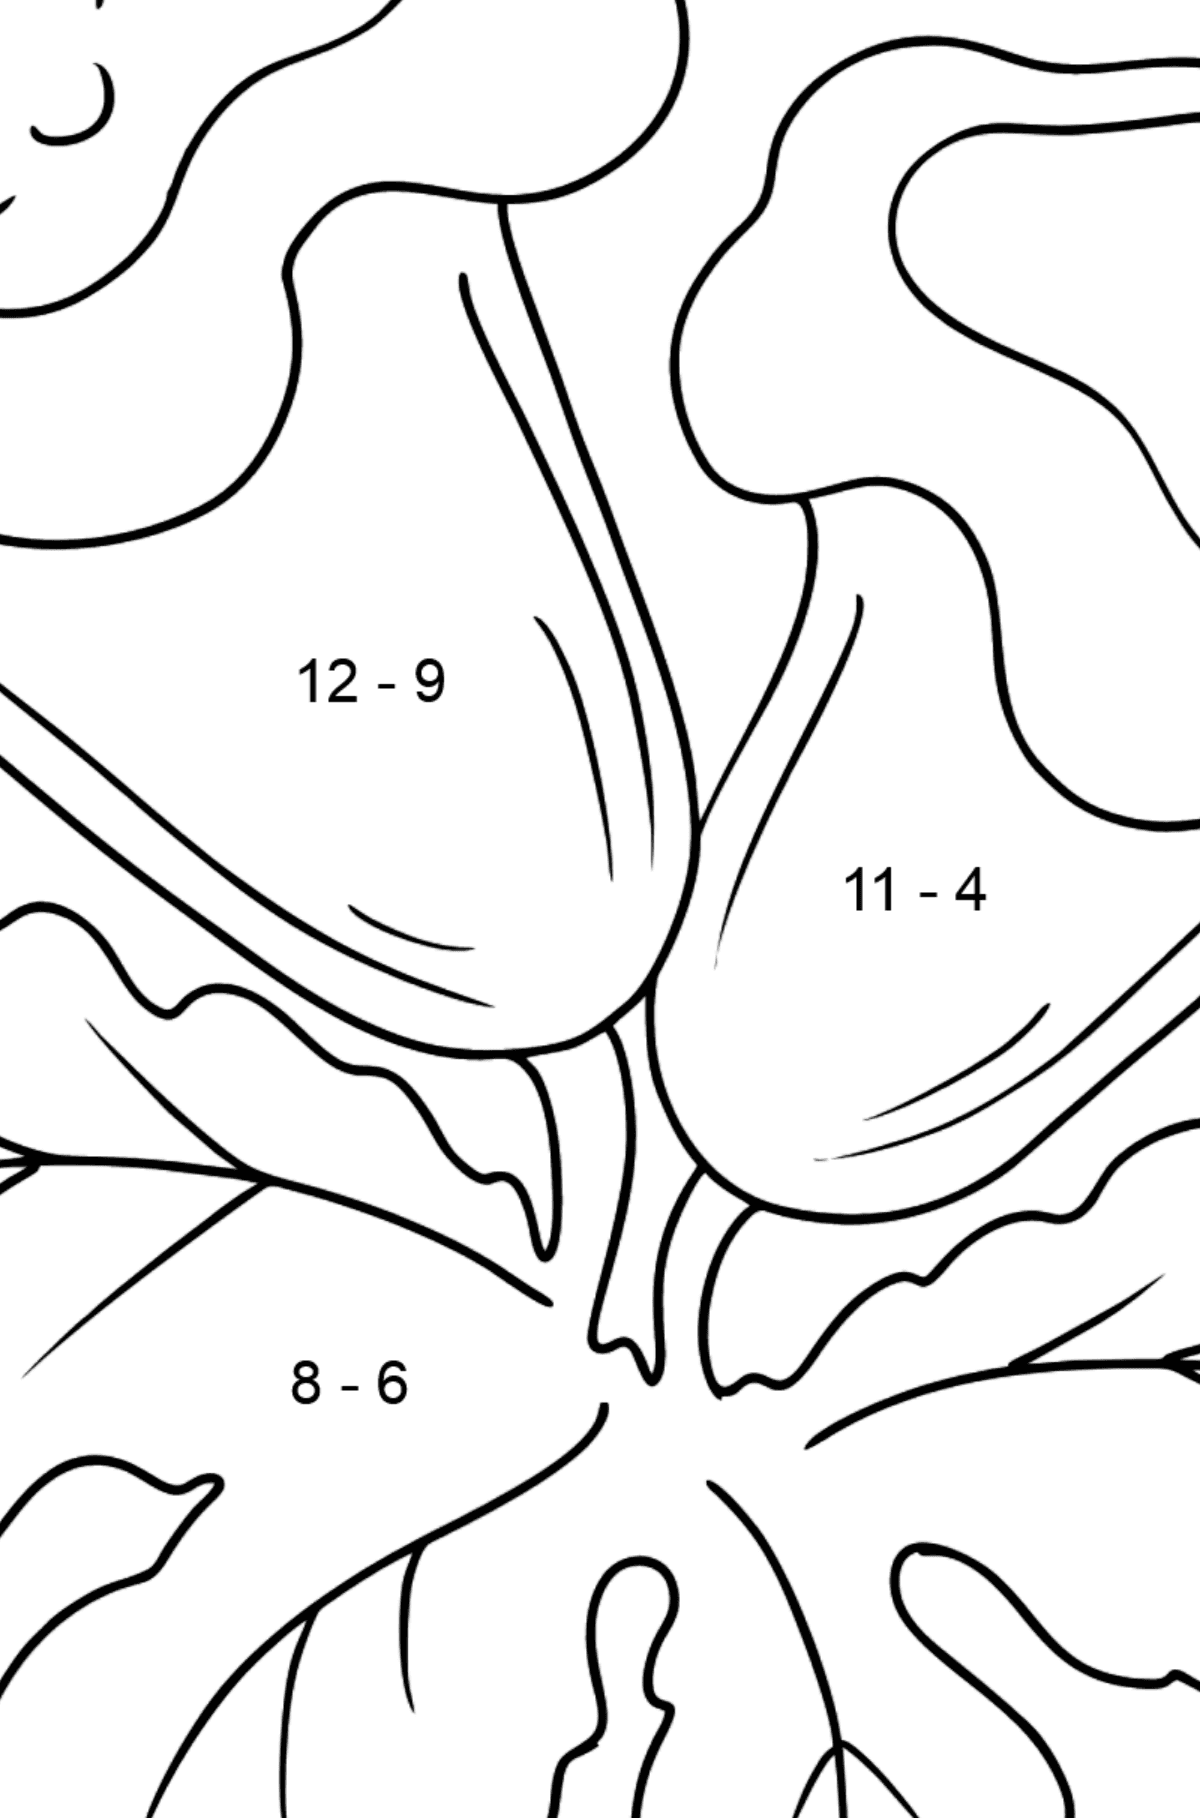 Coloring Page - Indoor flowers - Math Coloring - Subtraction for Kids